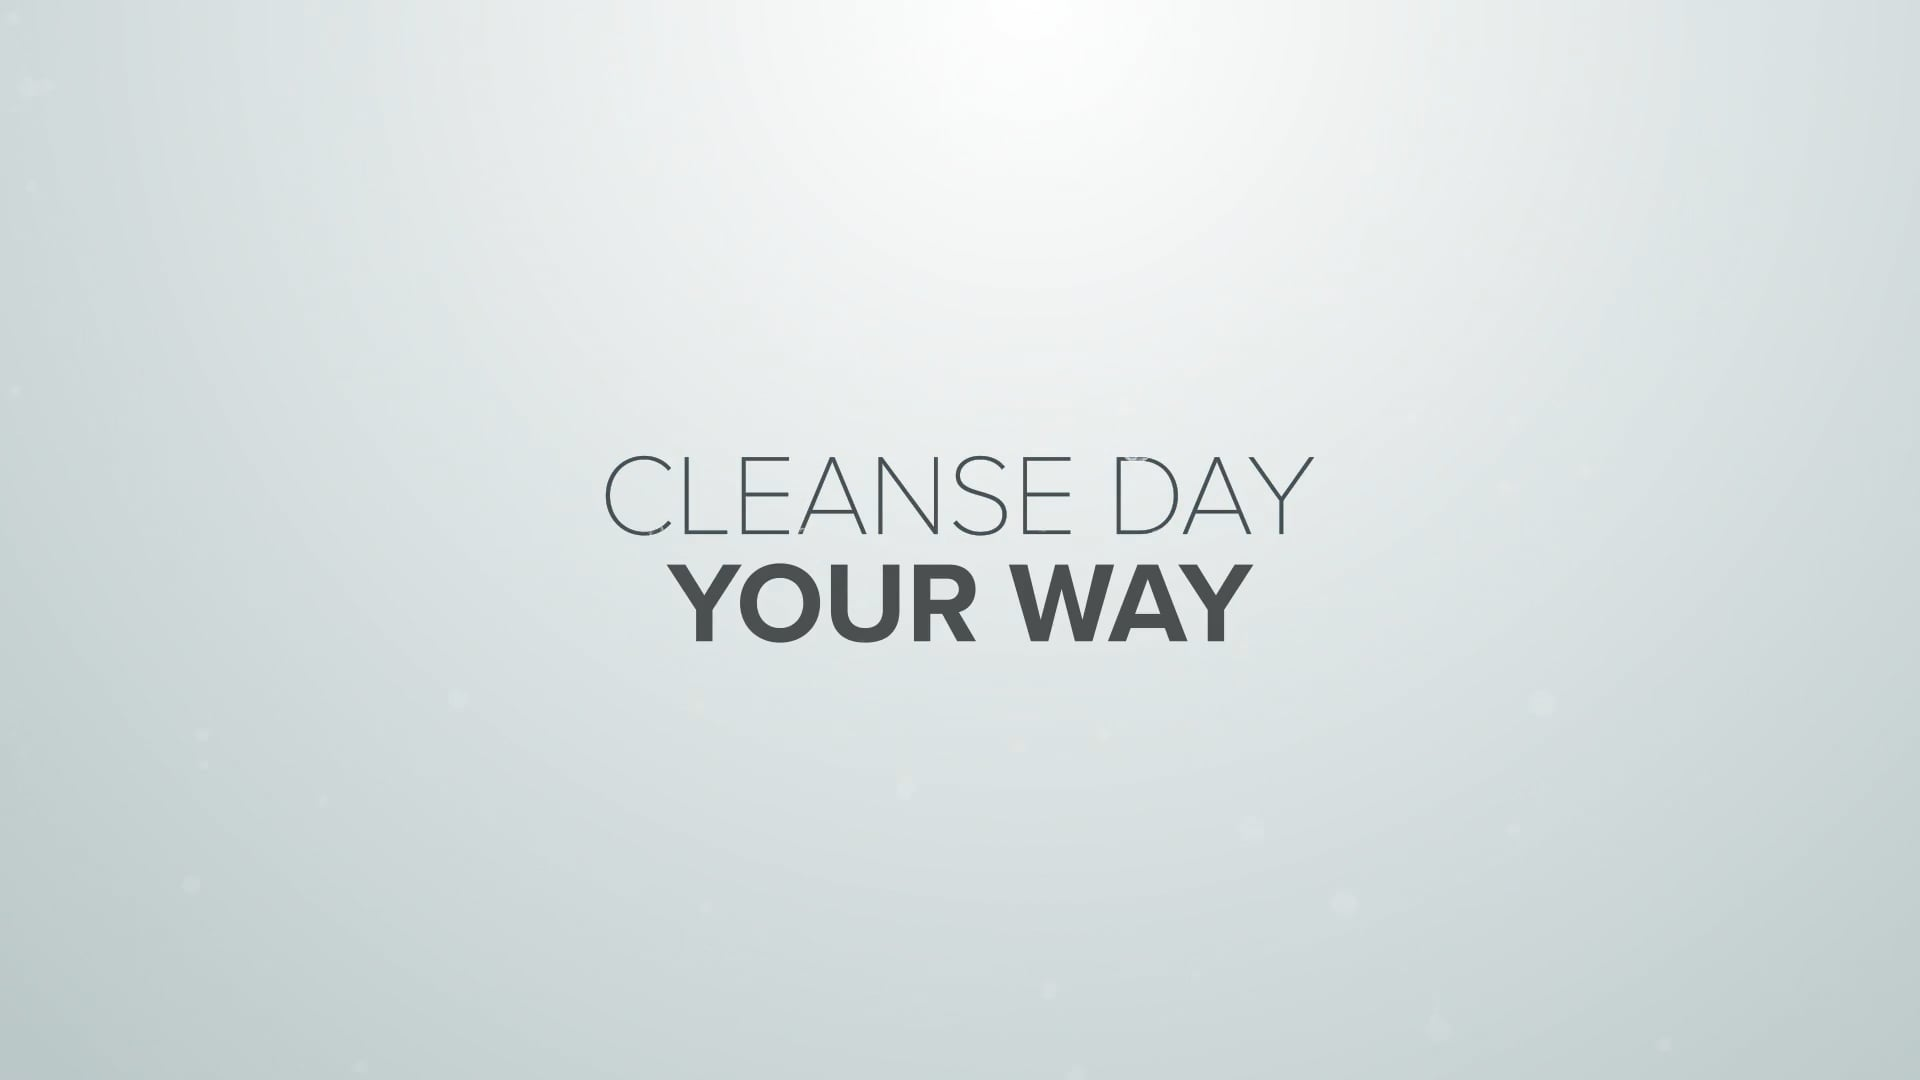 How to Do a Cleanse Day